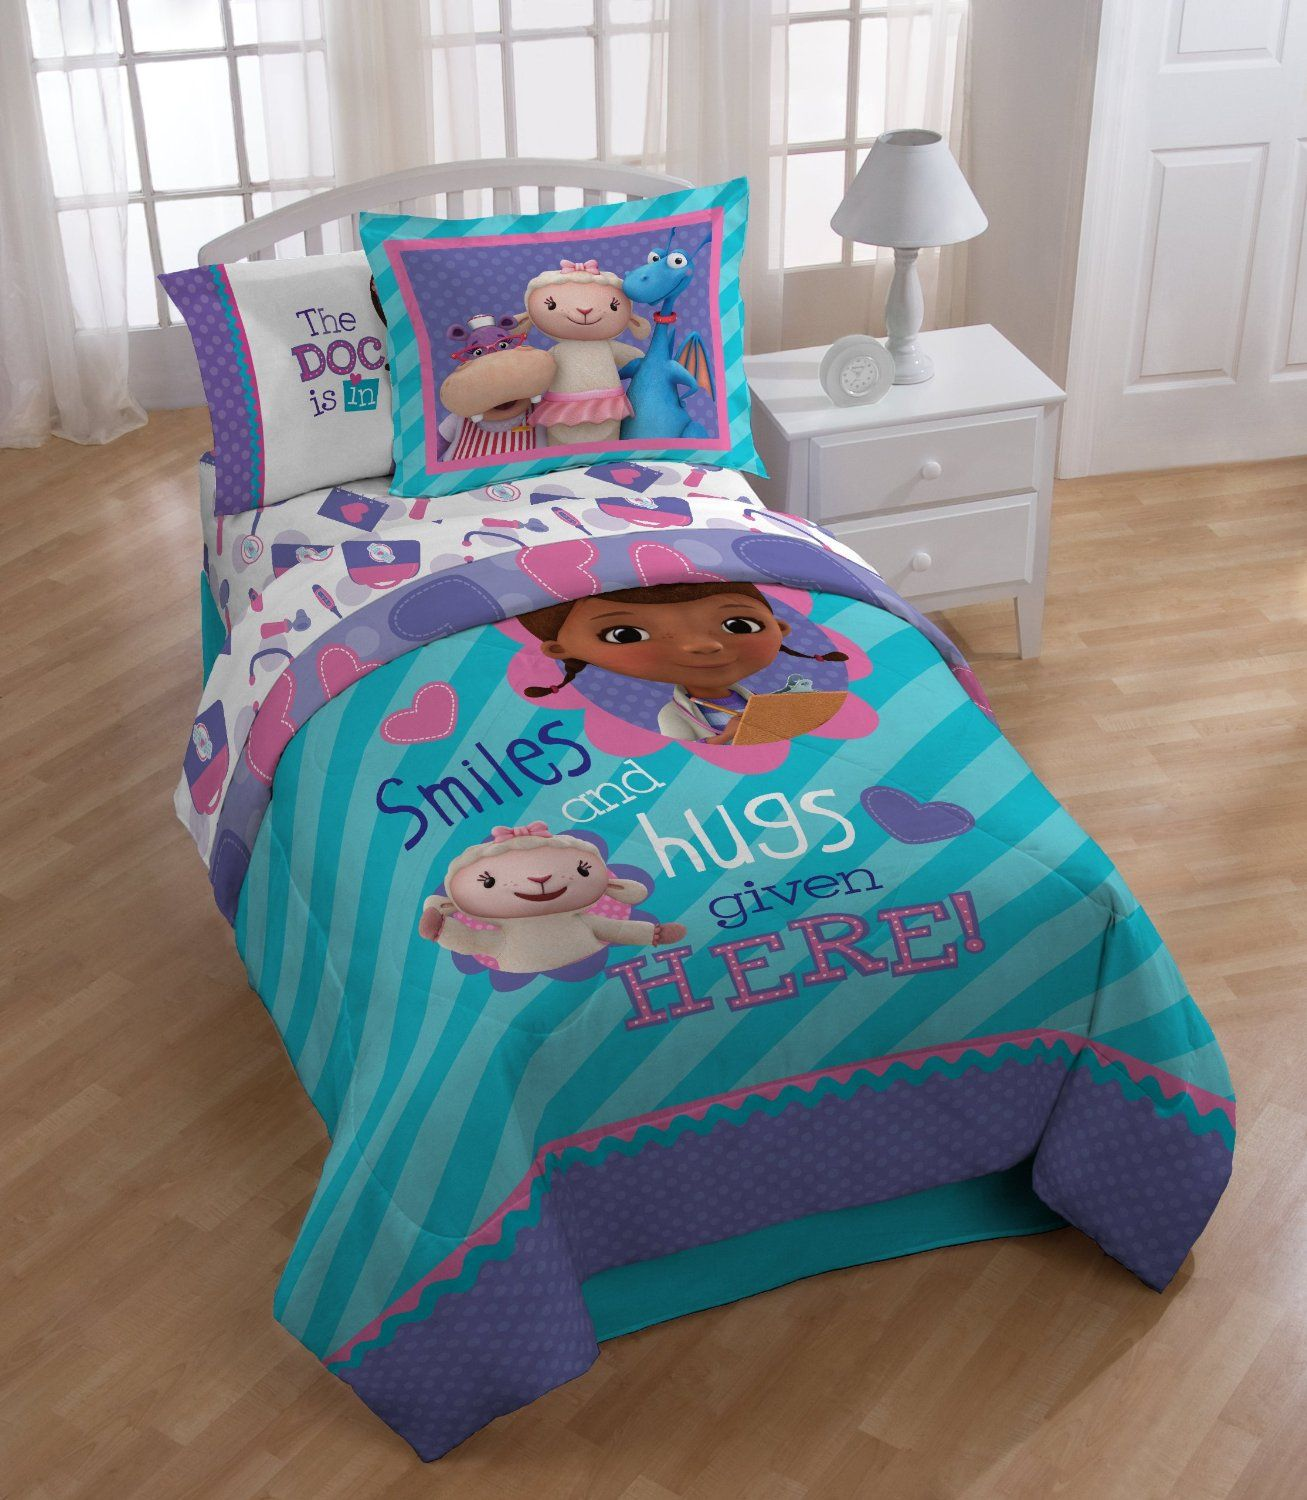 get the top doc mcstuffins bedding home decor and furniture idea for the top kids bedding for everyone to enjoy